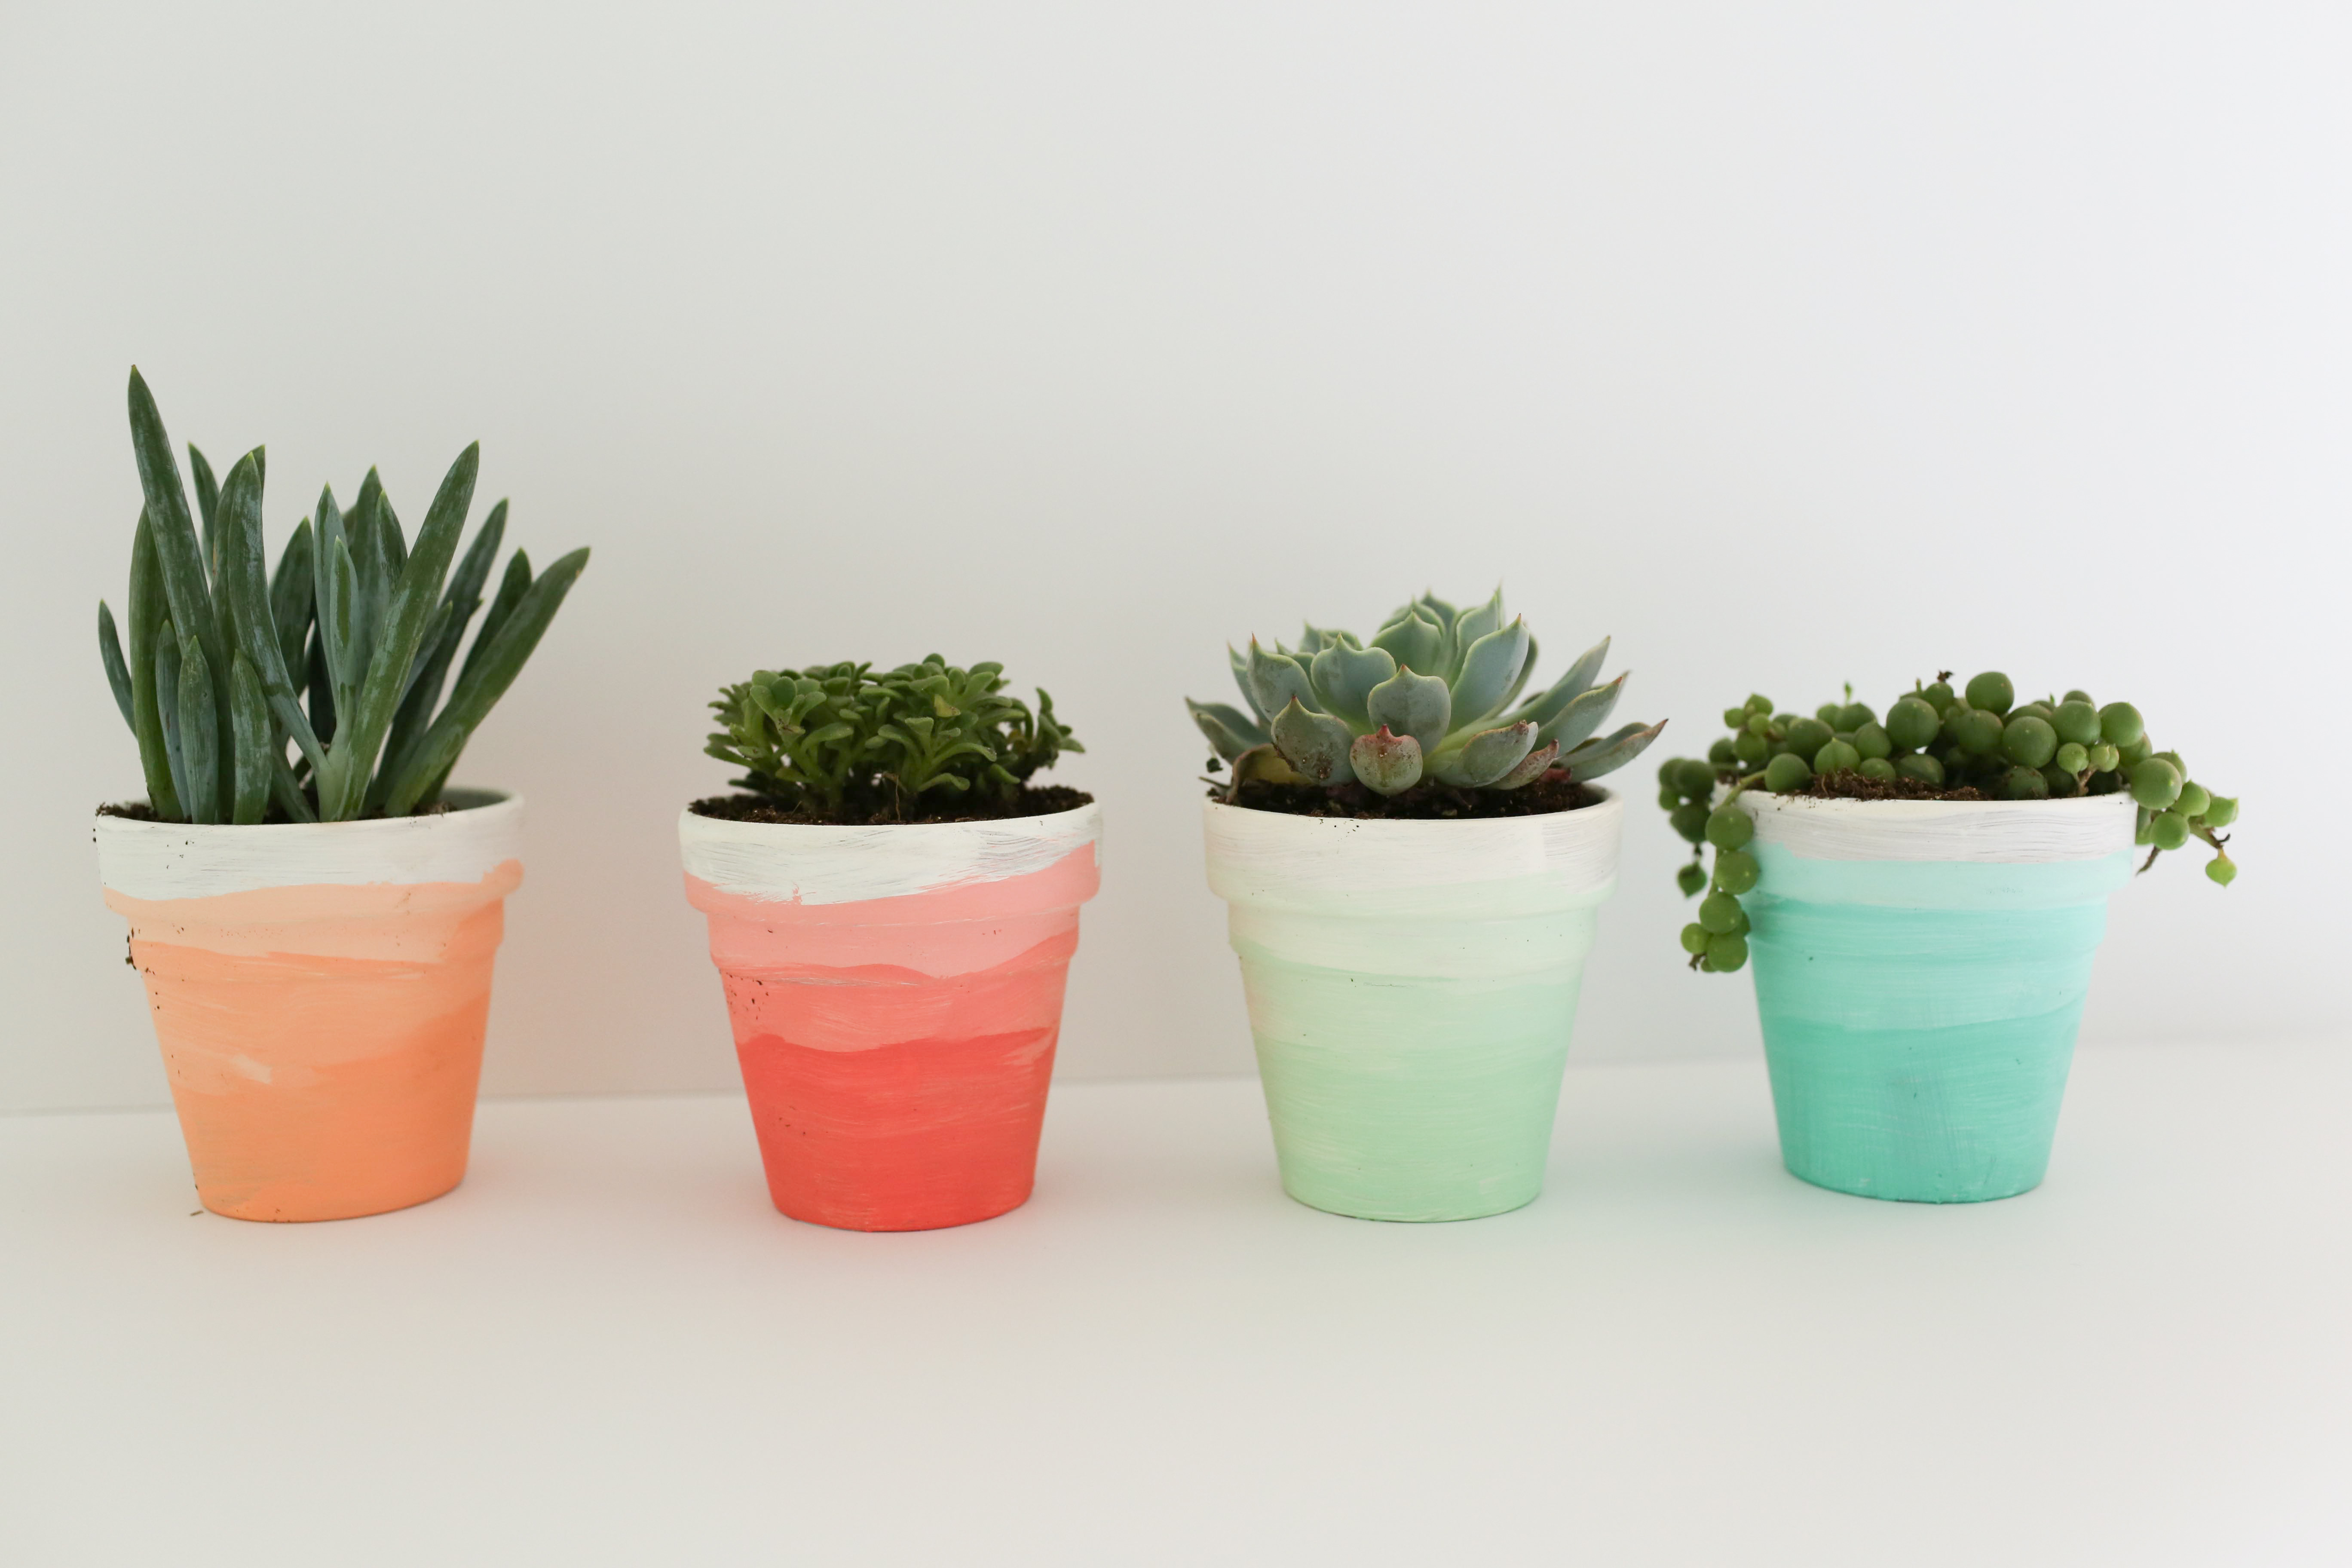 A DIY tutorial that shows you how to create these ombre succulent pots. Perfect for